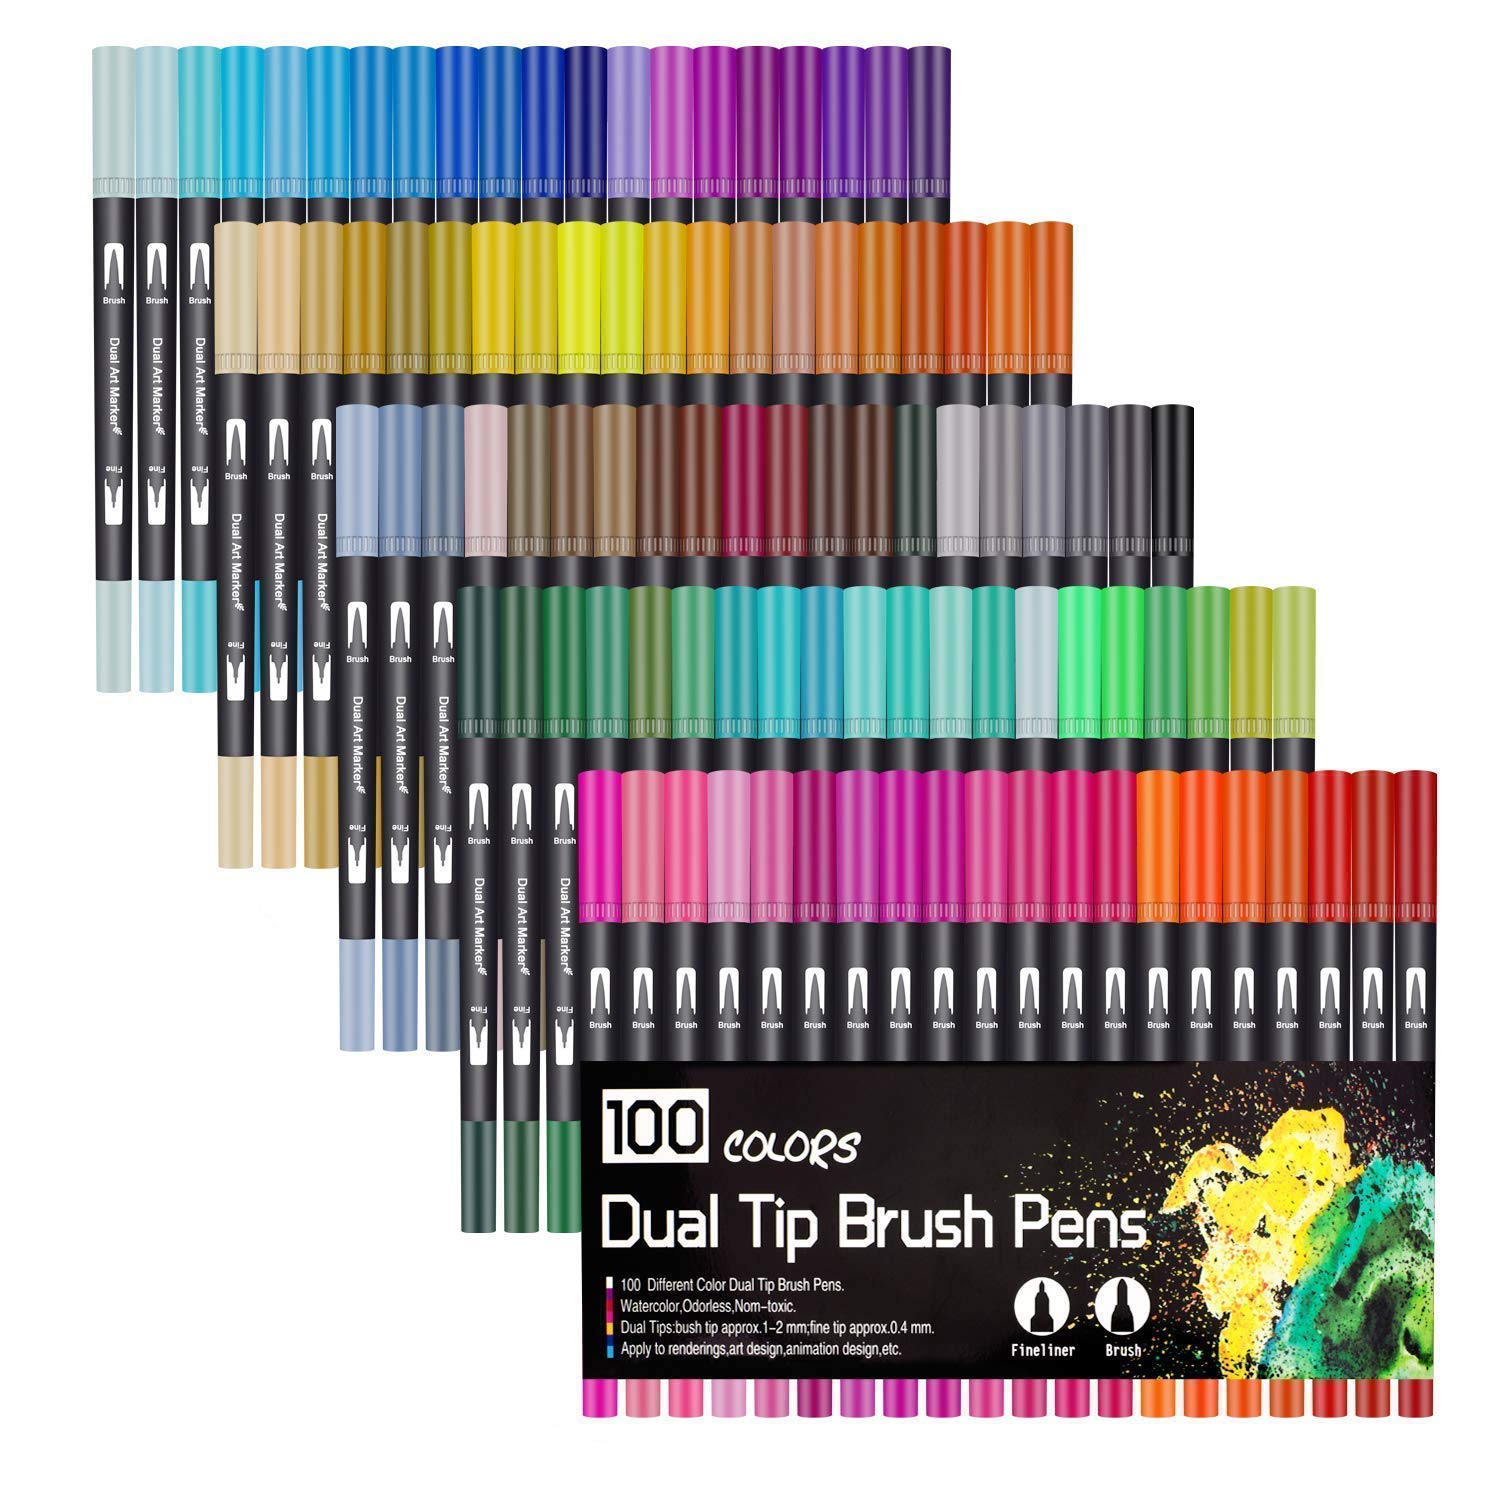 72 Color Dual Tip Brush Pens 0.4mm fineliners Pens Felt Tip Pens 1-2mm Watercolour Brush Pens Brush Tip Art Markers for Adults and Kids Colouring Sketching Painting Birthday Gift for Girl